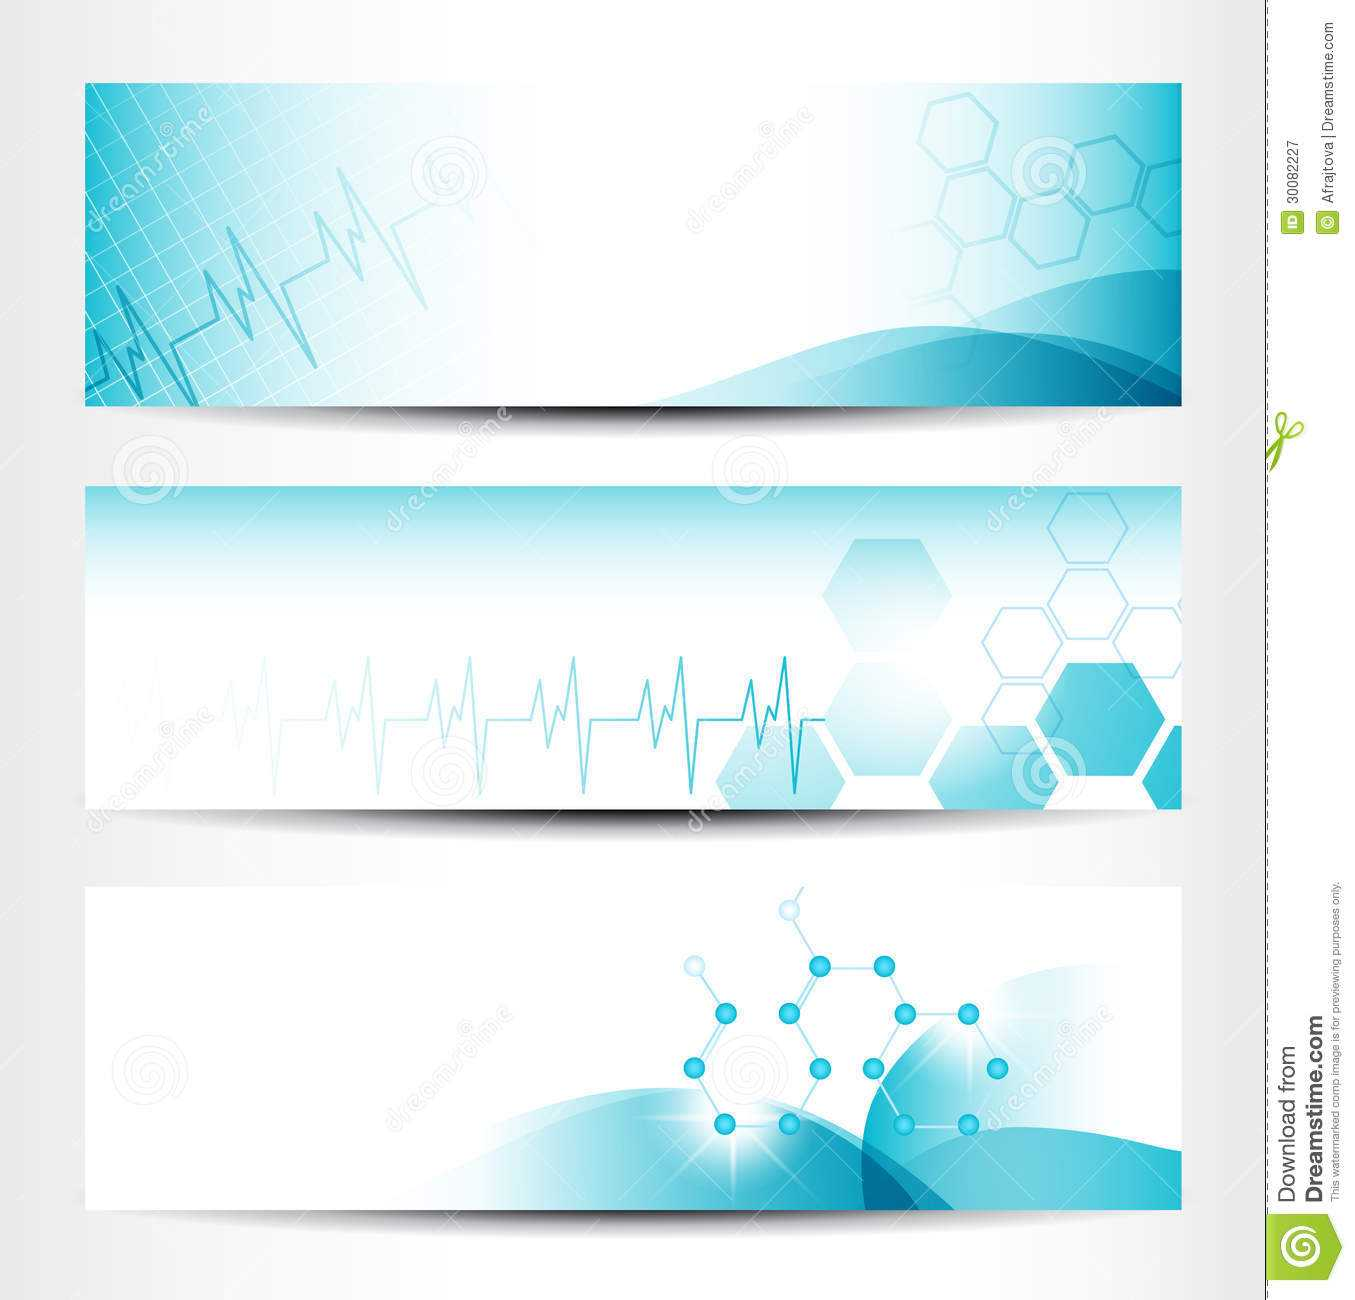 Medical Banners Stock Vector. Illustration Of Design - 30082227 With Medical Banner Template